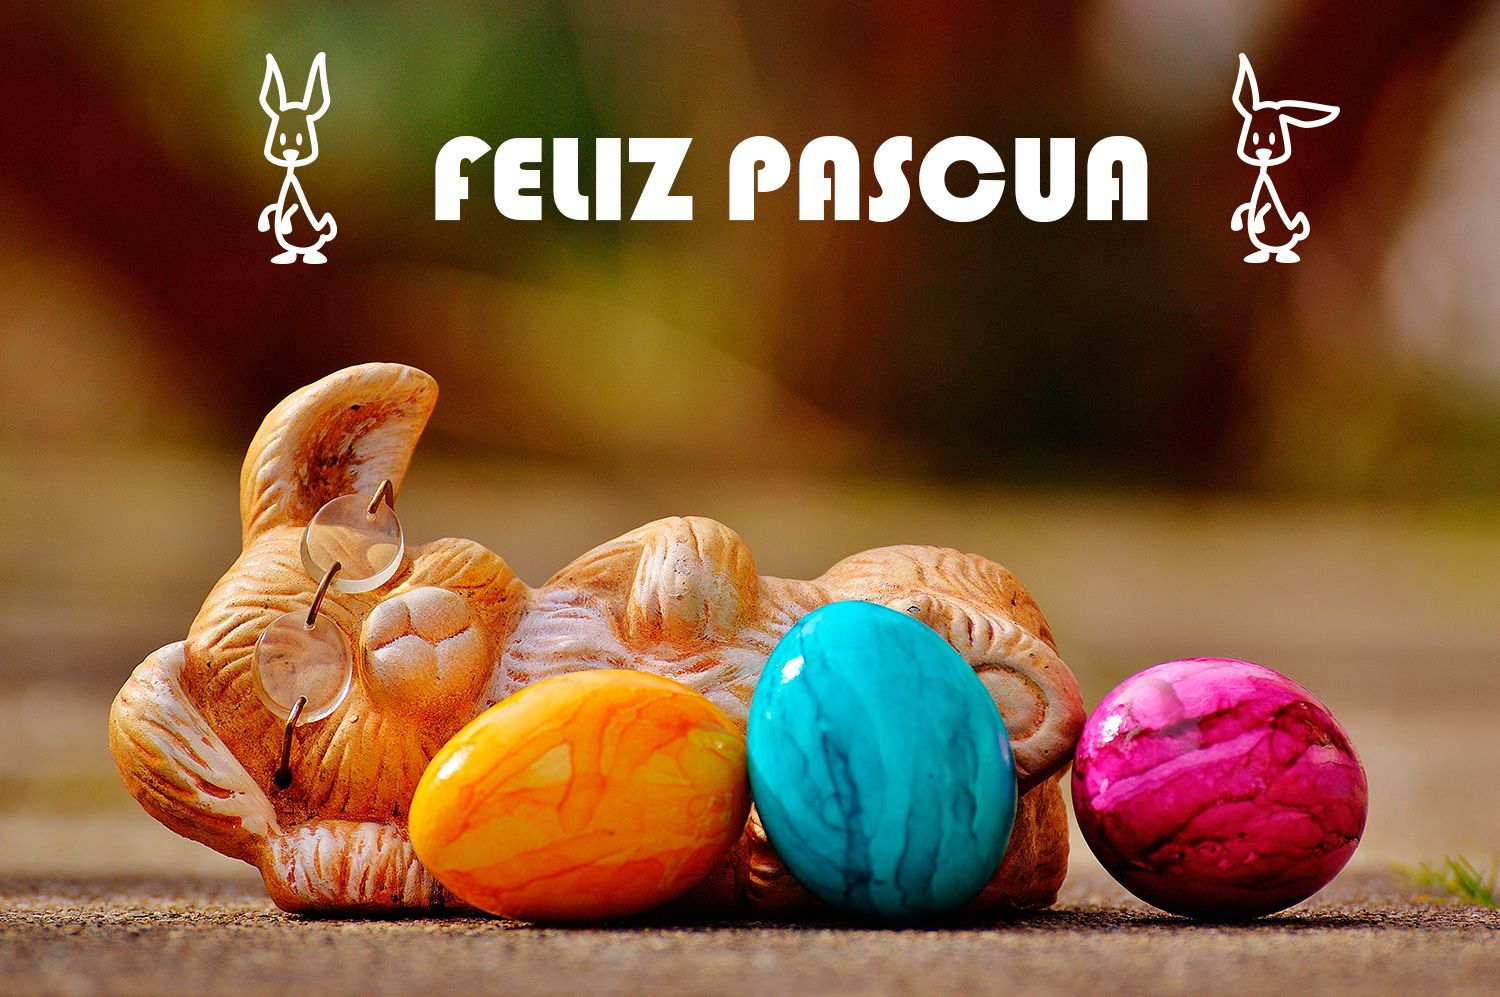 Best 25 feliz pascua ideas on pinterest huevo pascua for Manualidades para pascua